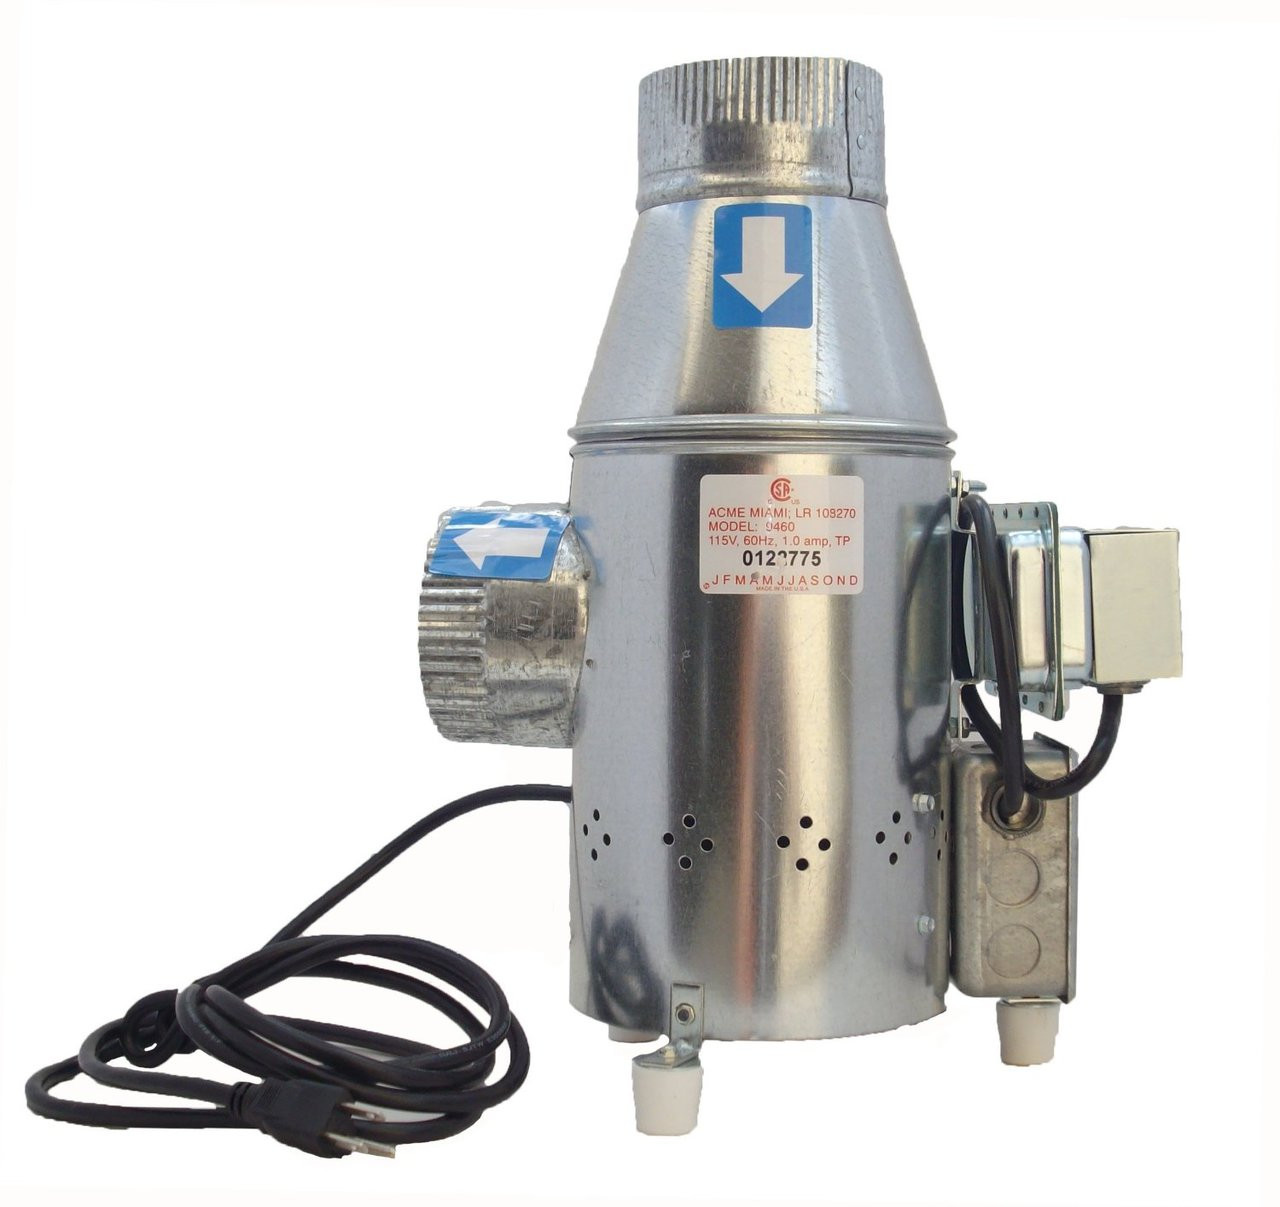 A9460 Dryerjet Power Vent Vent Booster Csh Electric